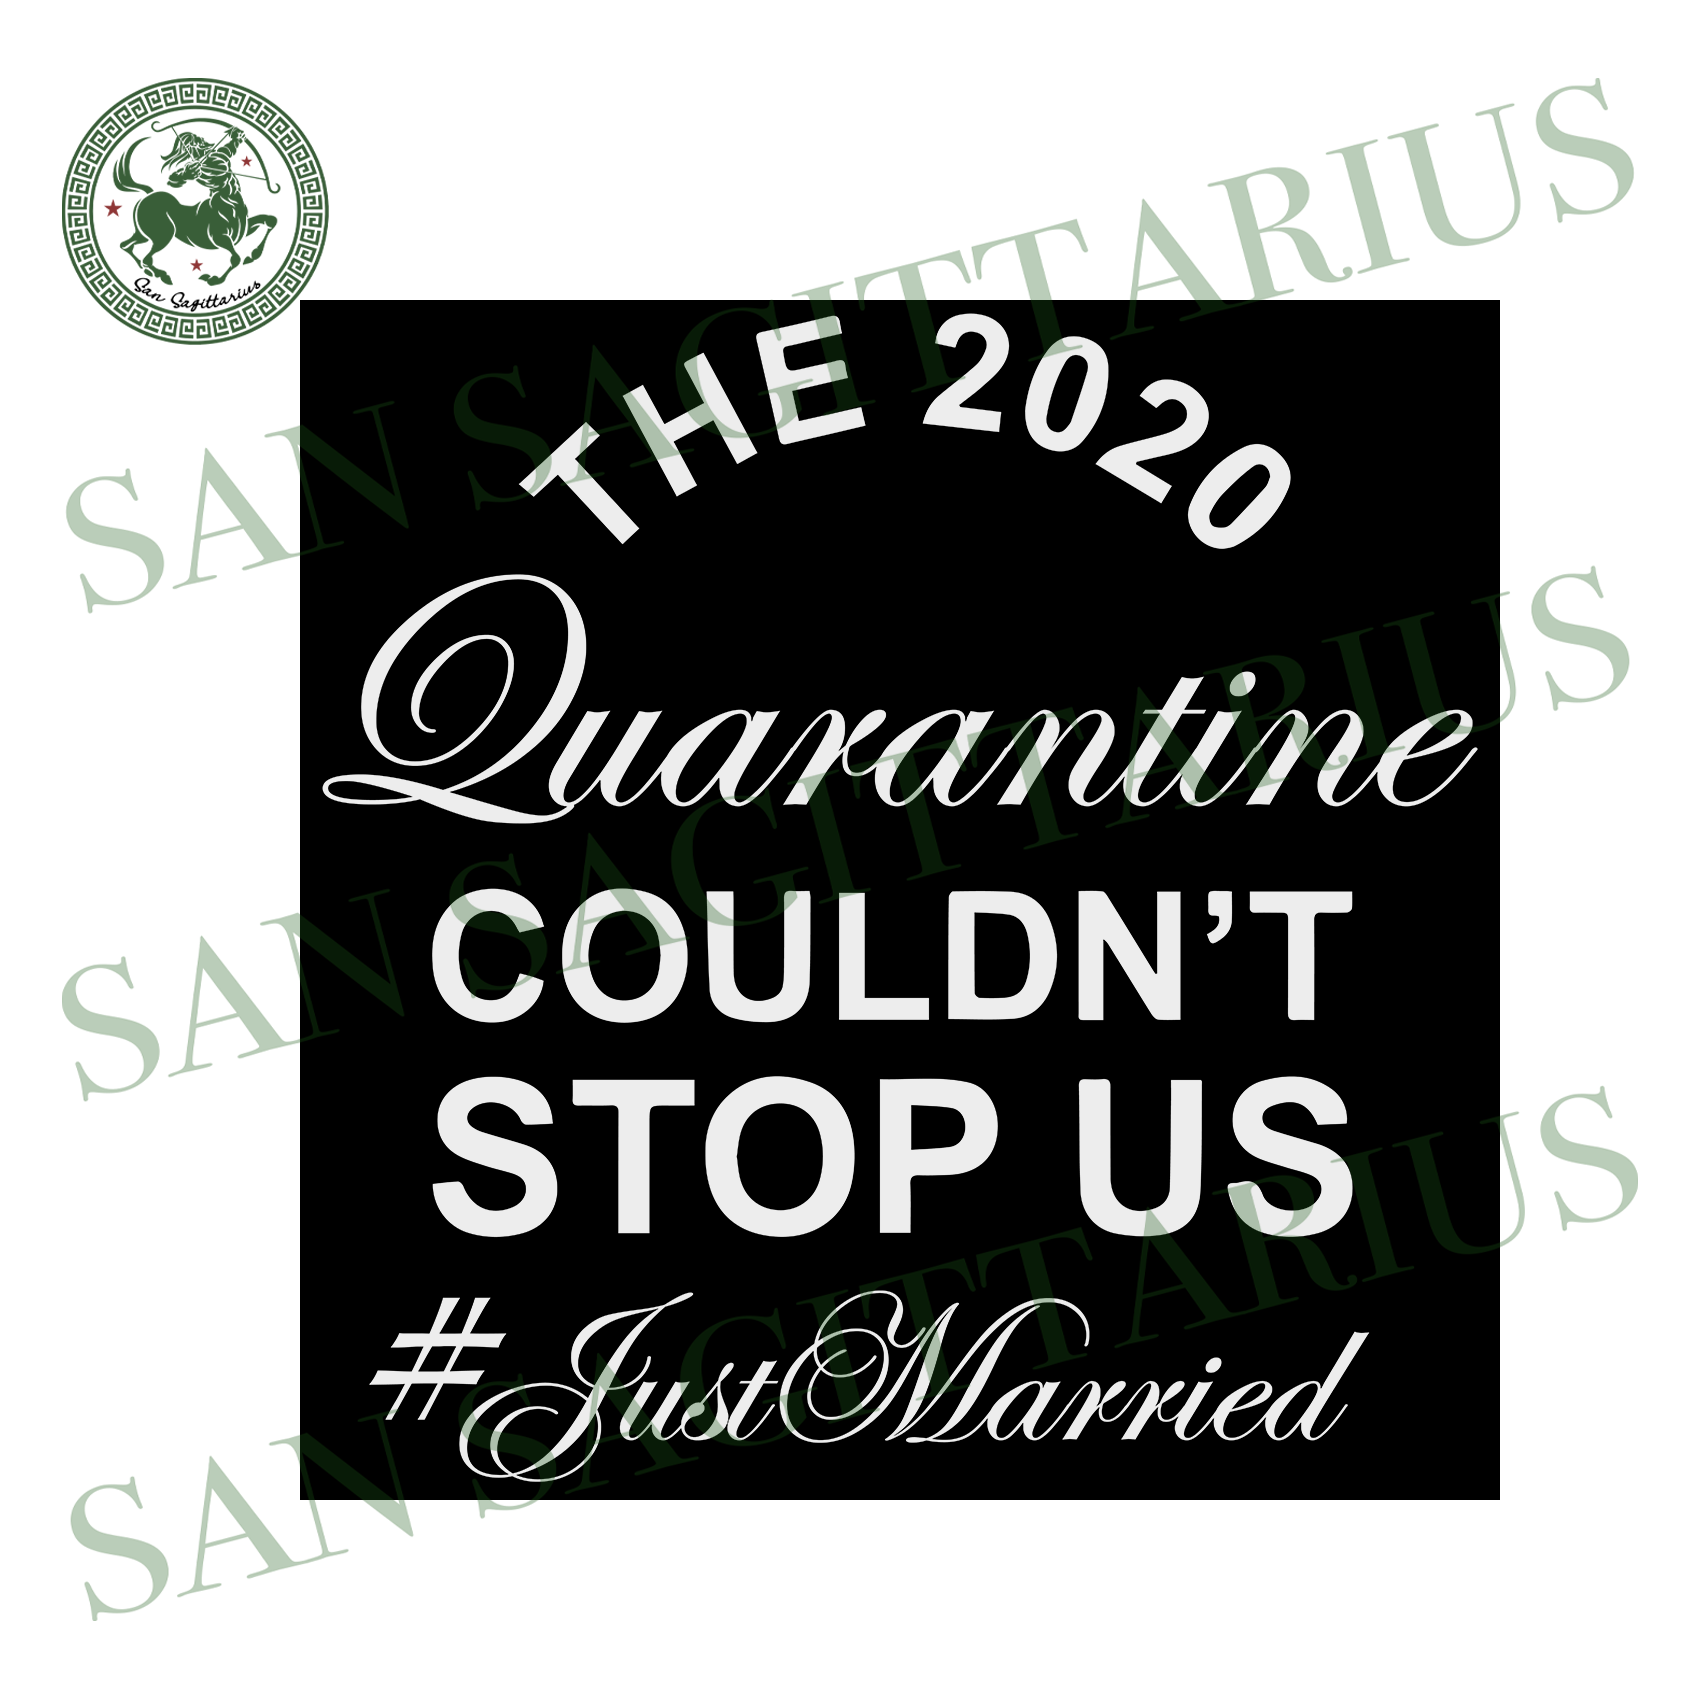 The 2020 quarantine couldnt stop us svg,svg,quarantine time svg, 2020 quarantine svg,funny quotes svg, funny saying svg,svg cricut, silhouette svg files, cricut svg, silhouette svg, svg desig